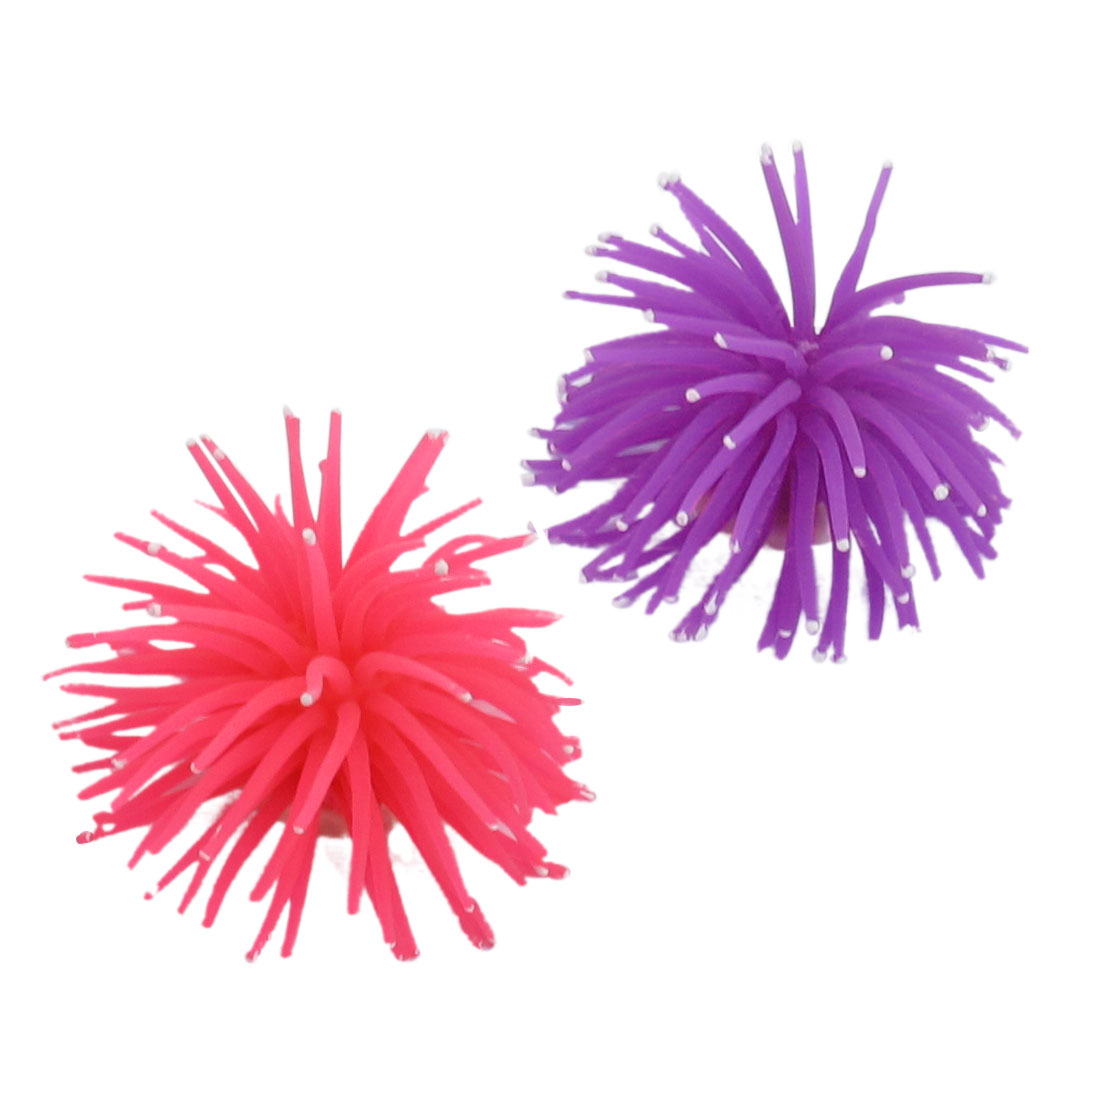 2 Pcs White Dot Purple Fuchsia Soft Silicone Corals Ornament for Fish Tank